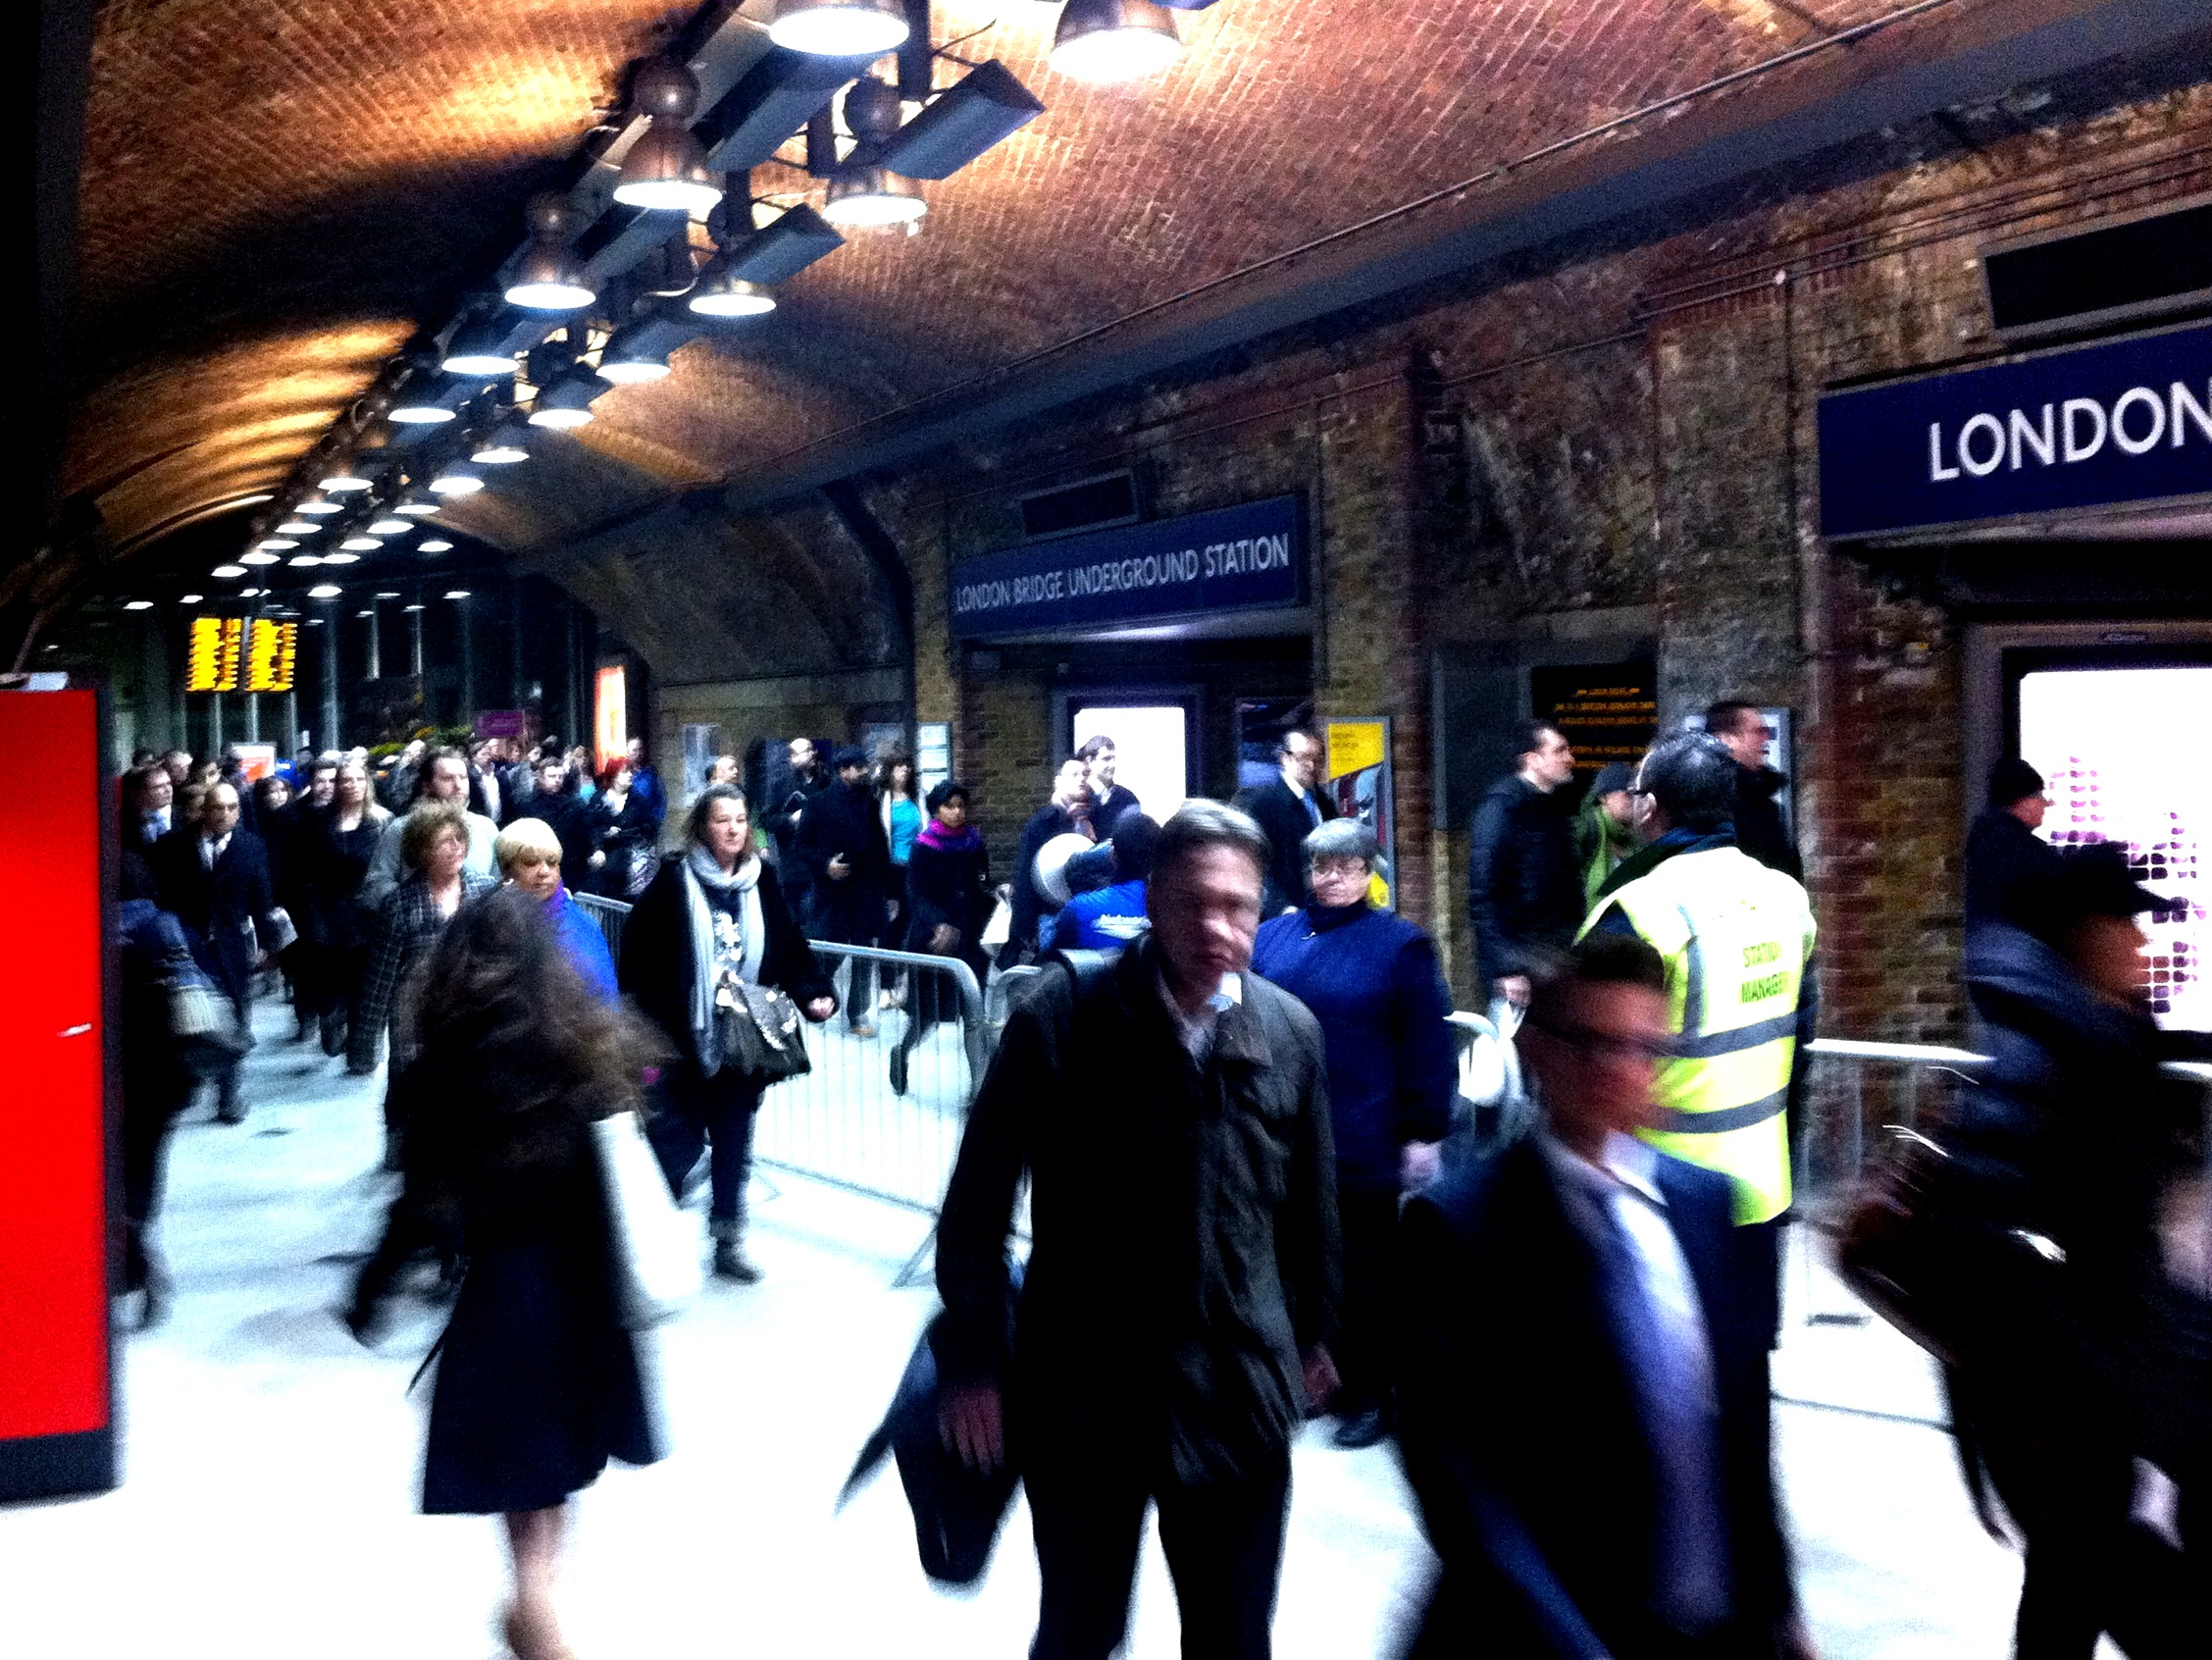 People movement in London Bridge Underground Station